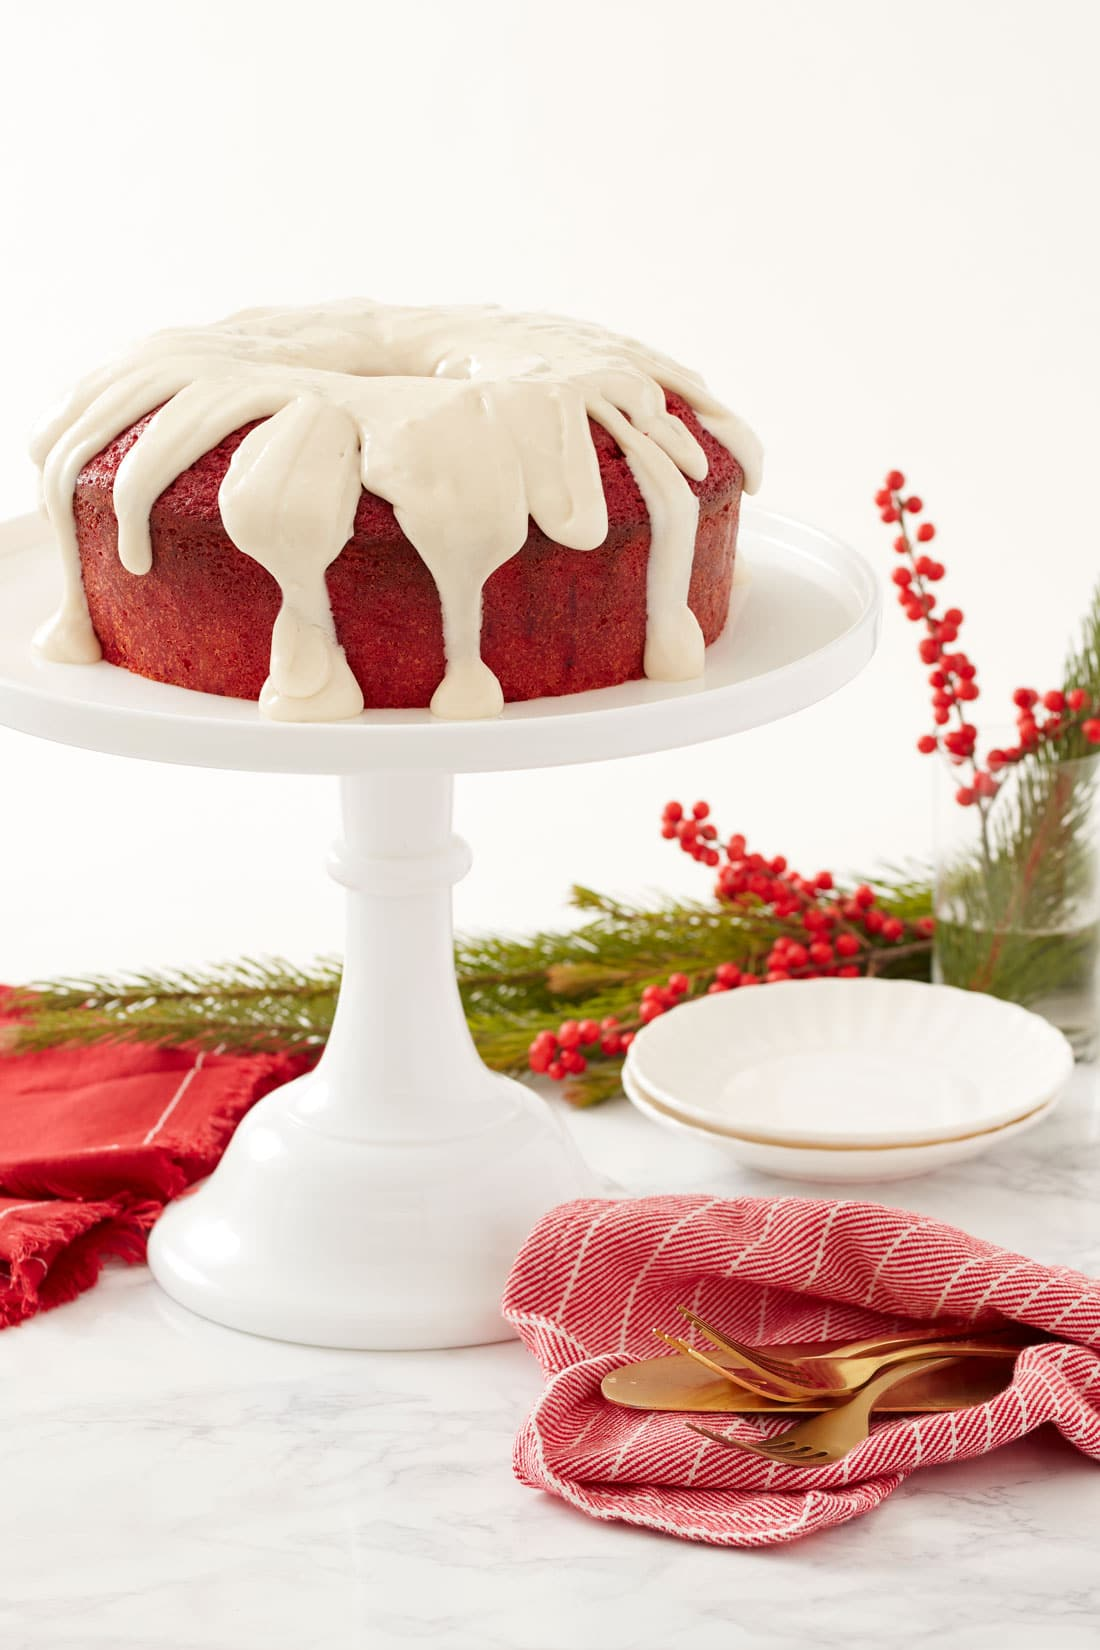 Image of a whole Miss Jones Baking Co's Red Velvet Bundt Cake and Cream Cheese Glaze